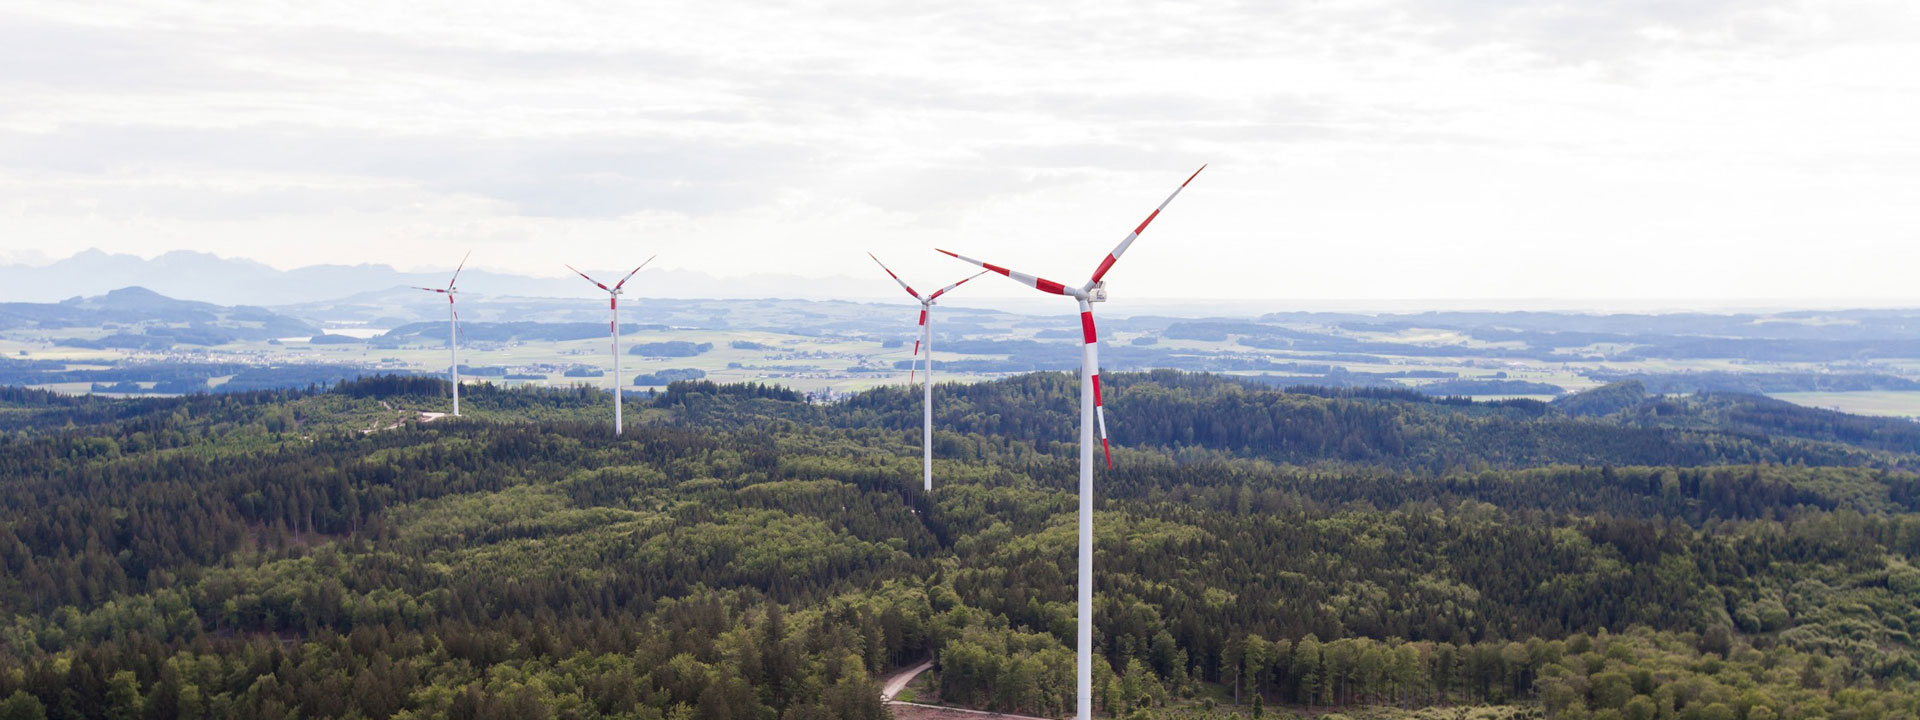 Windpark Munderfing in Oberösterreich